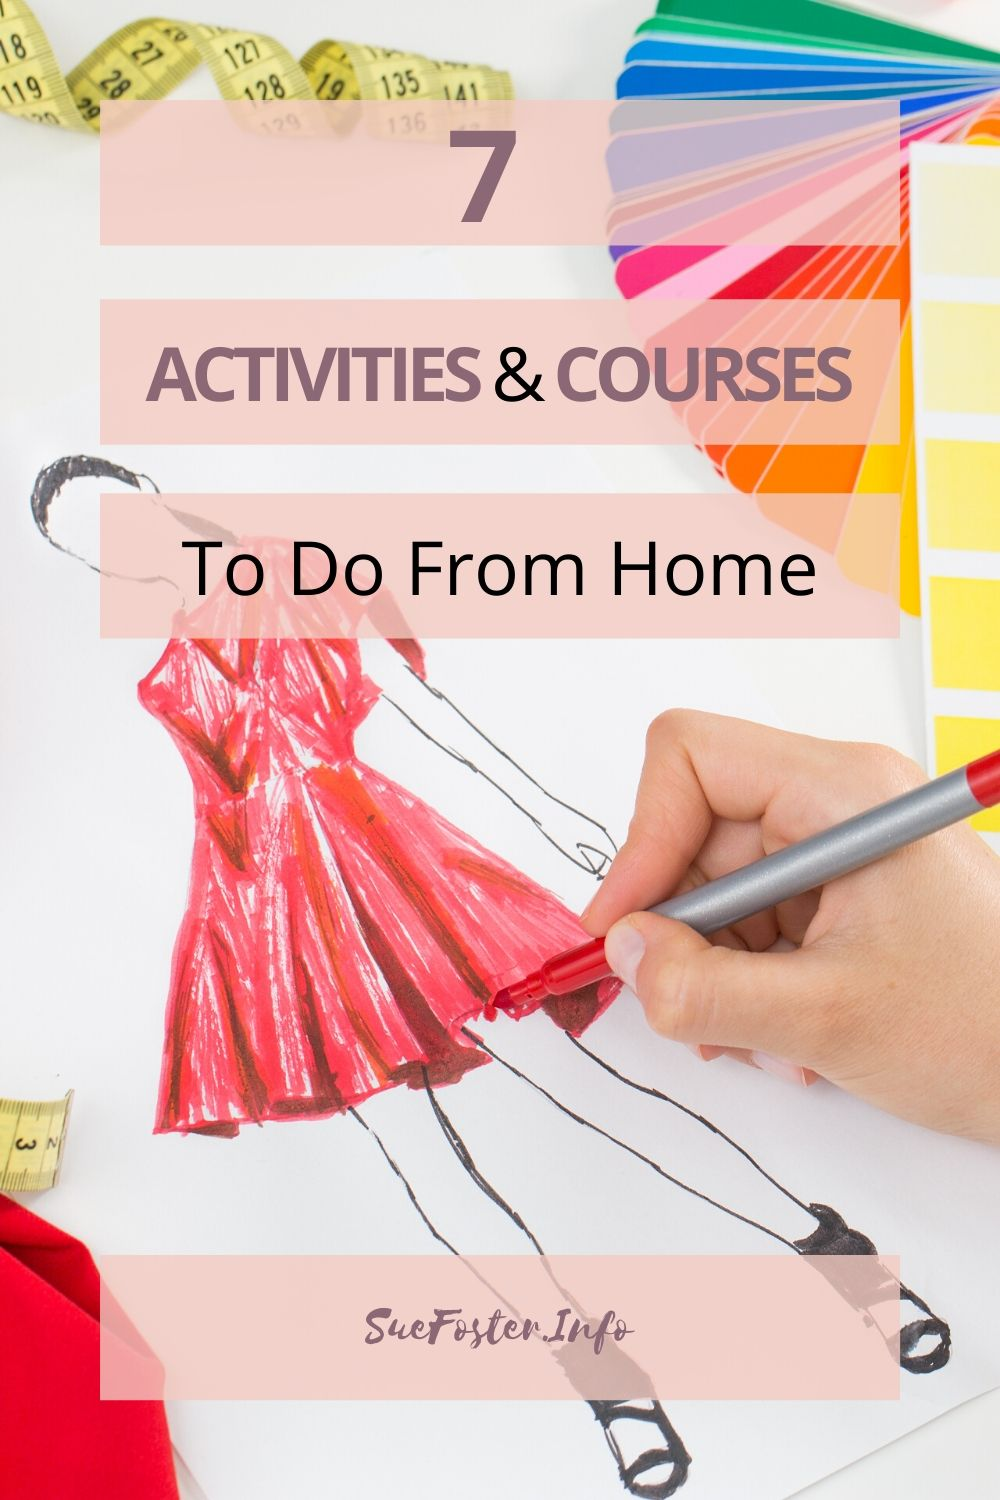 I've put together seven great activities and courses that can be done from home and they're perfect for keeping all the family occupied, including some free activities to take advantage of!